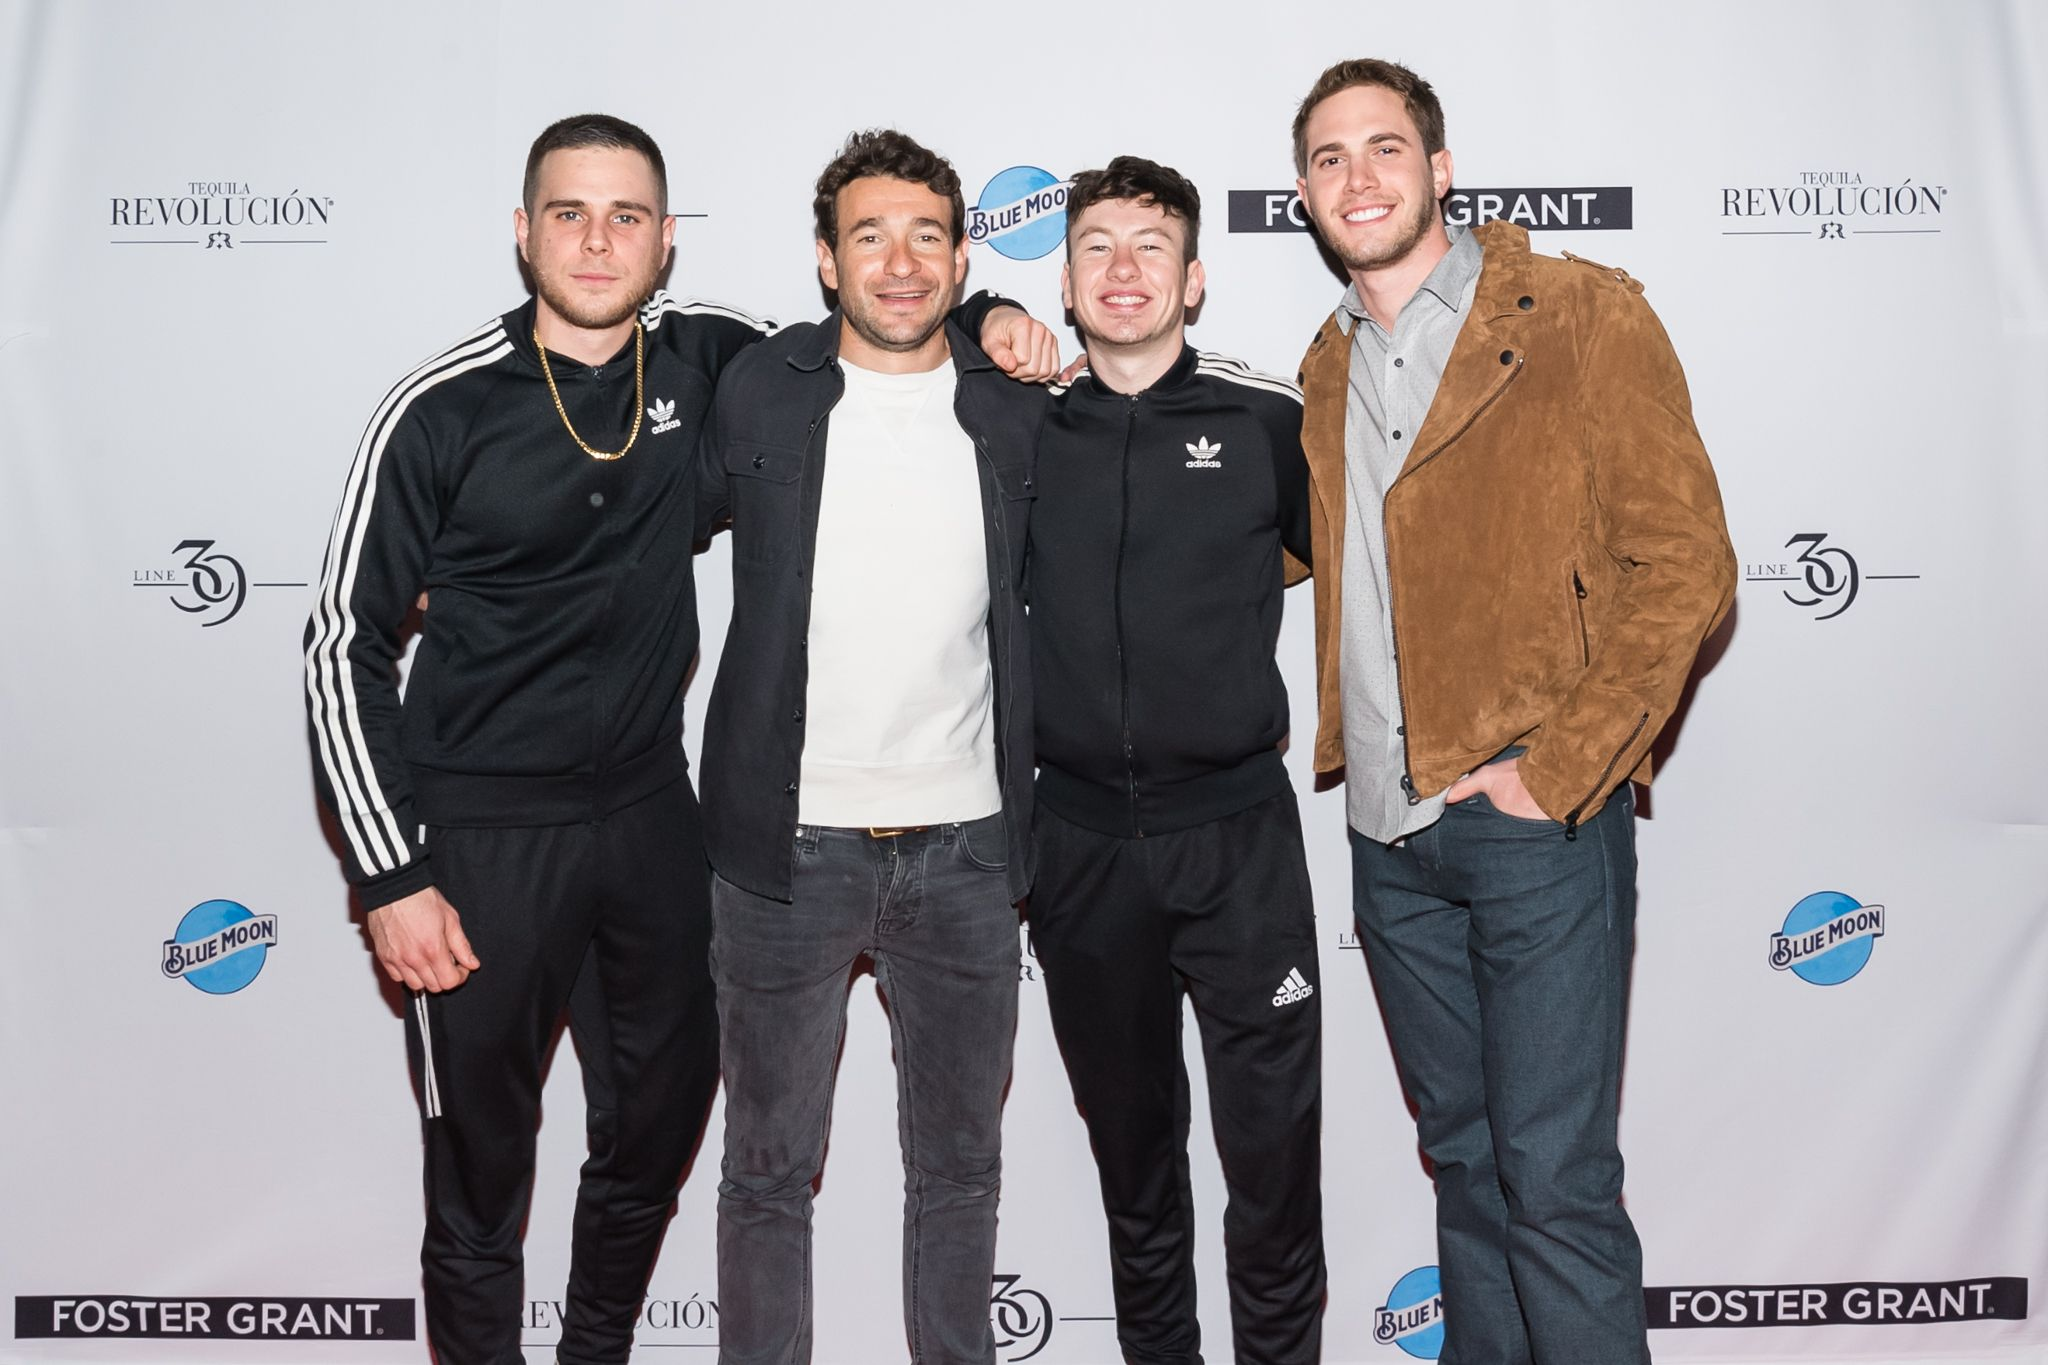 """american animals sxsw party image 13 - 'American Animals' SXSW Pre-Premiere Party Pics and Recap From """"Supper Suite by Foster Grant"""""""